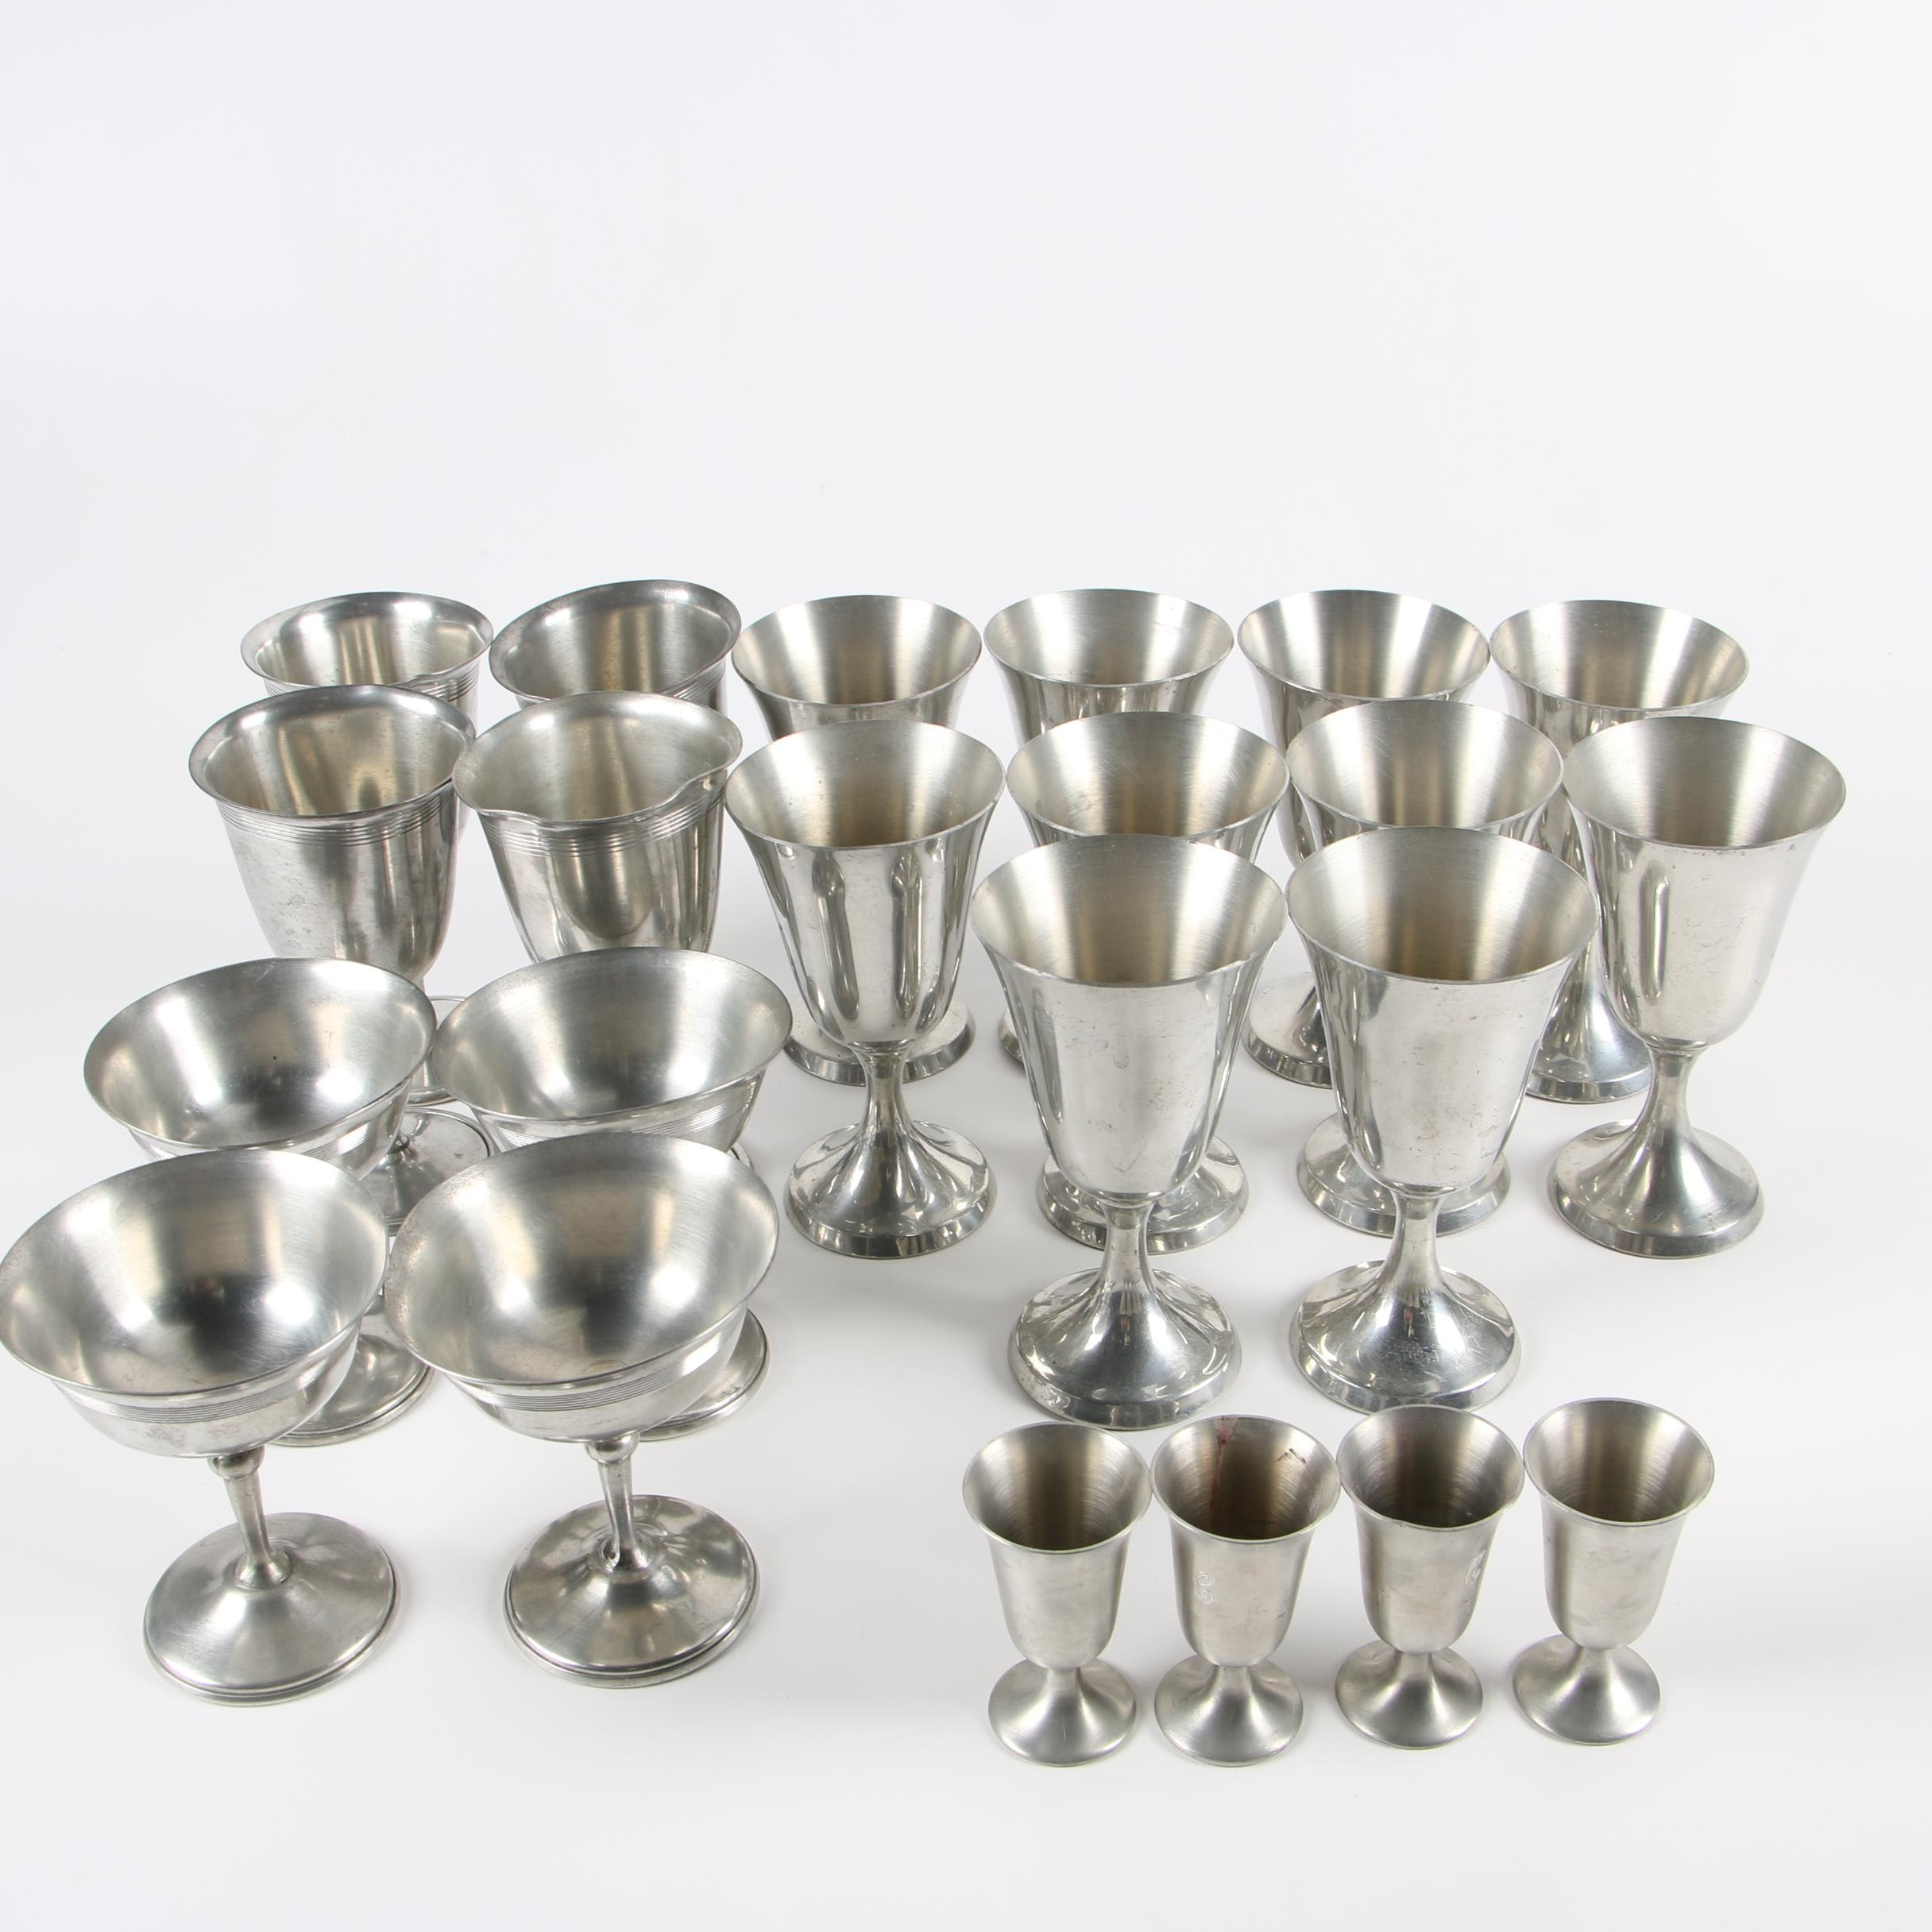 Stieff and Towle Pewter Wine Goblets and Cordials and Other Glasses